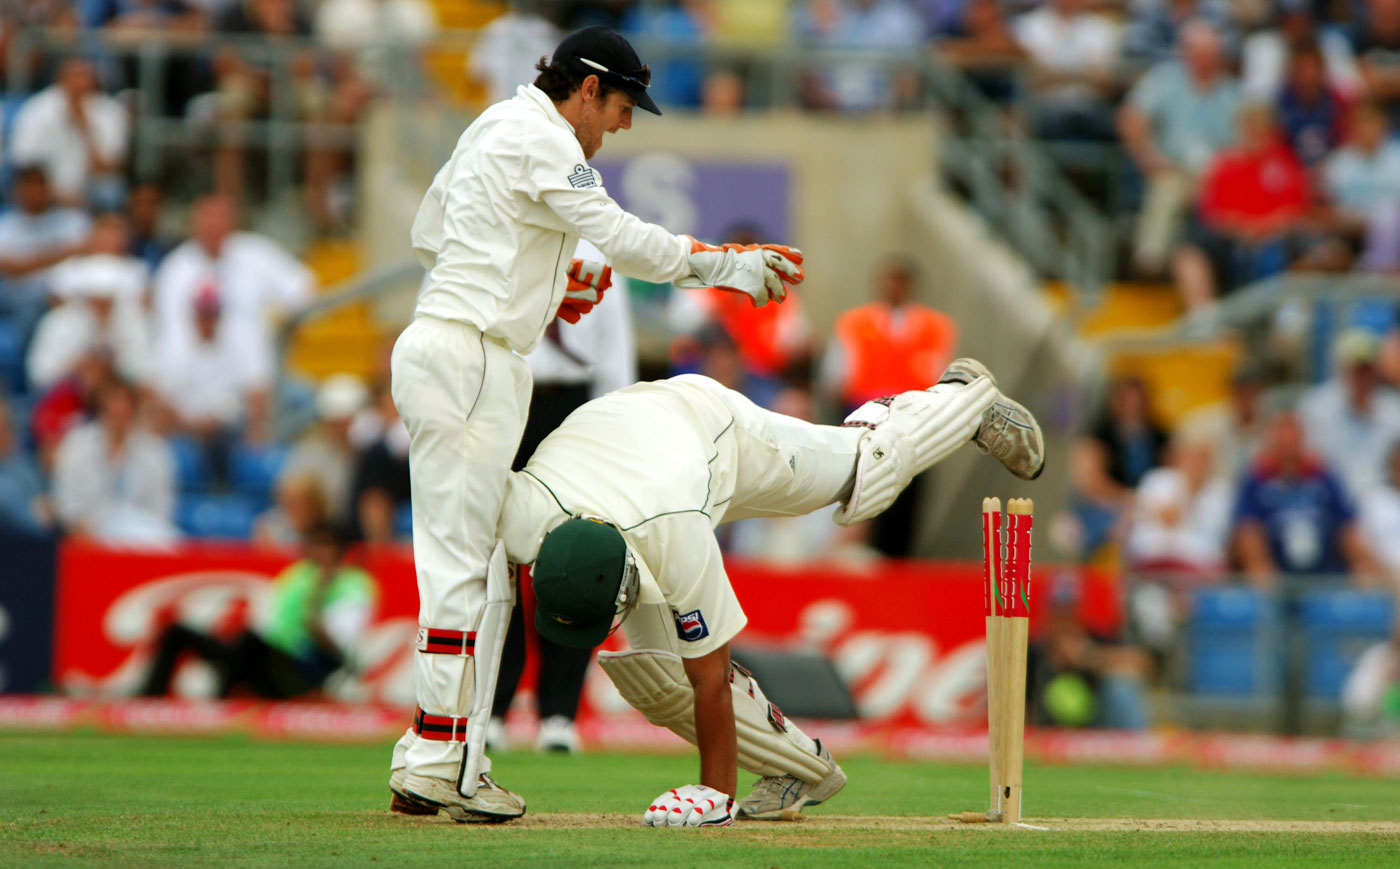 Obstacle course: Inzamam treats the stumps like a hurdle (or not) at Headingley in 2006